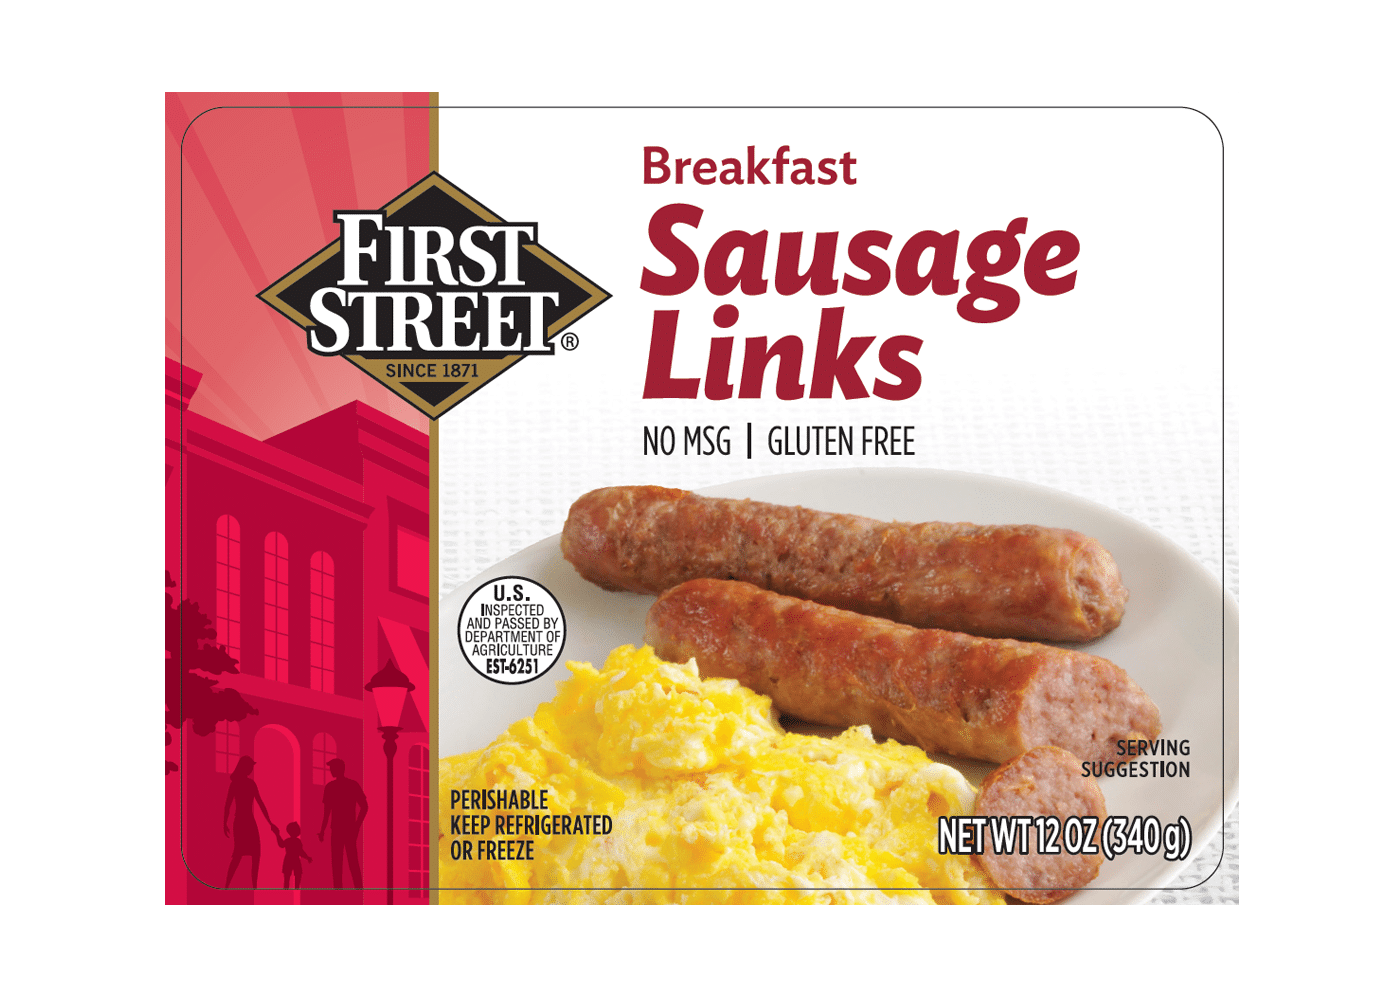 First Street Breakfast Sausage Links